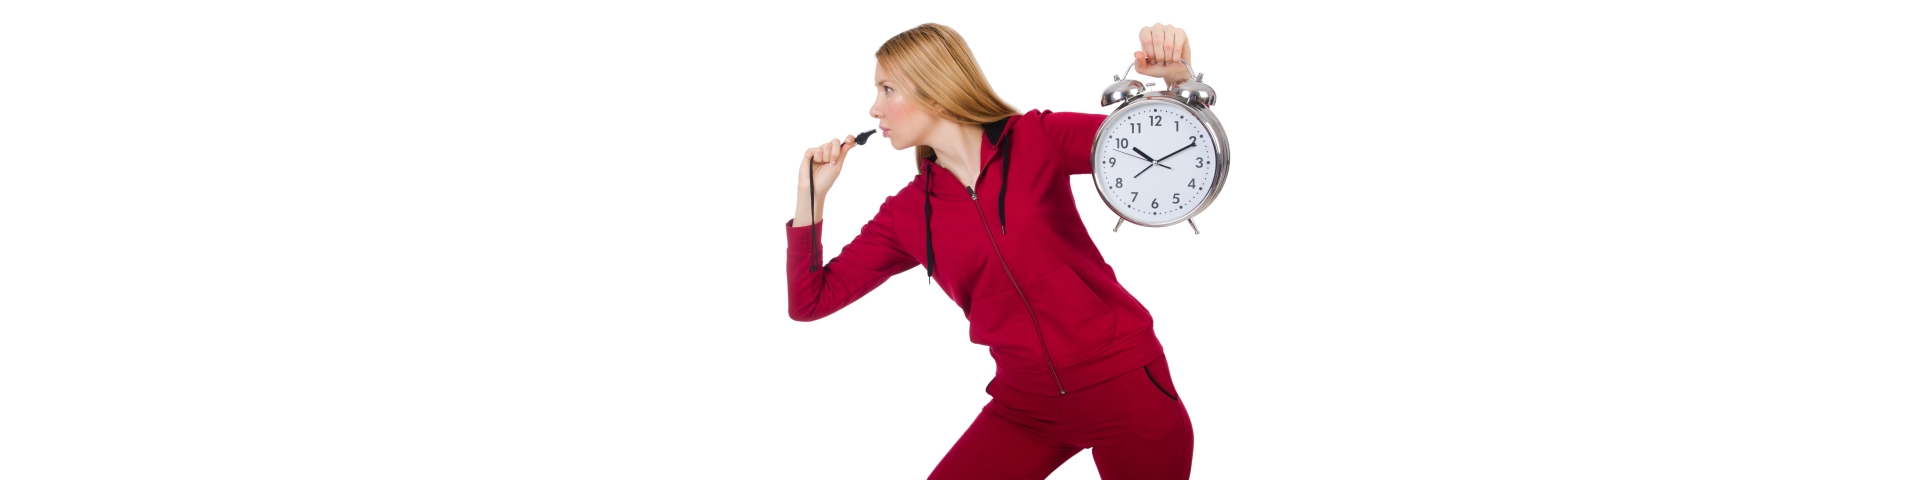 training-female-with-clock-and-whistle